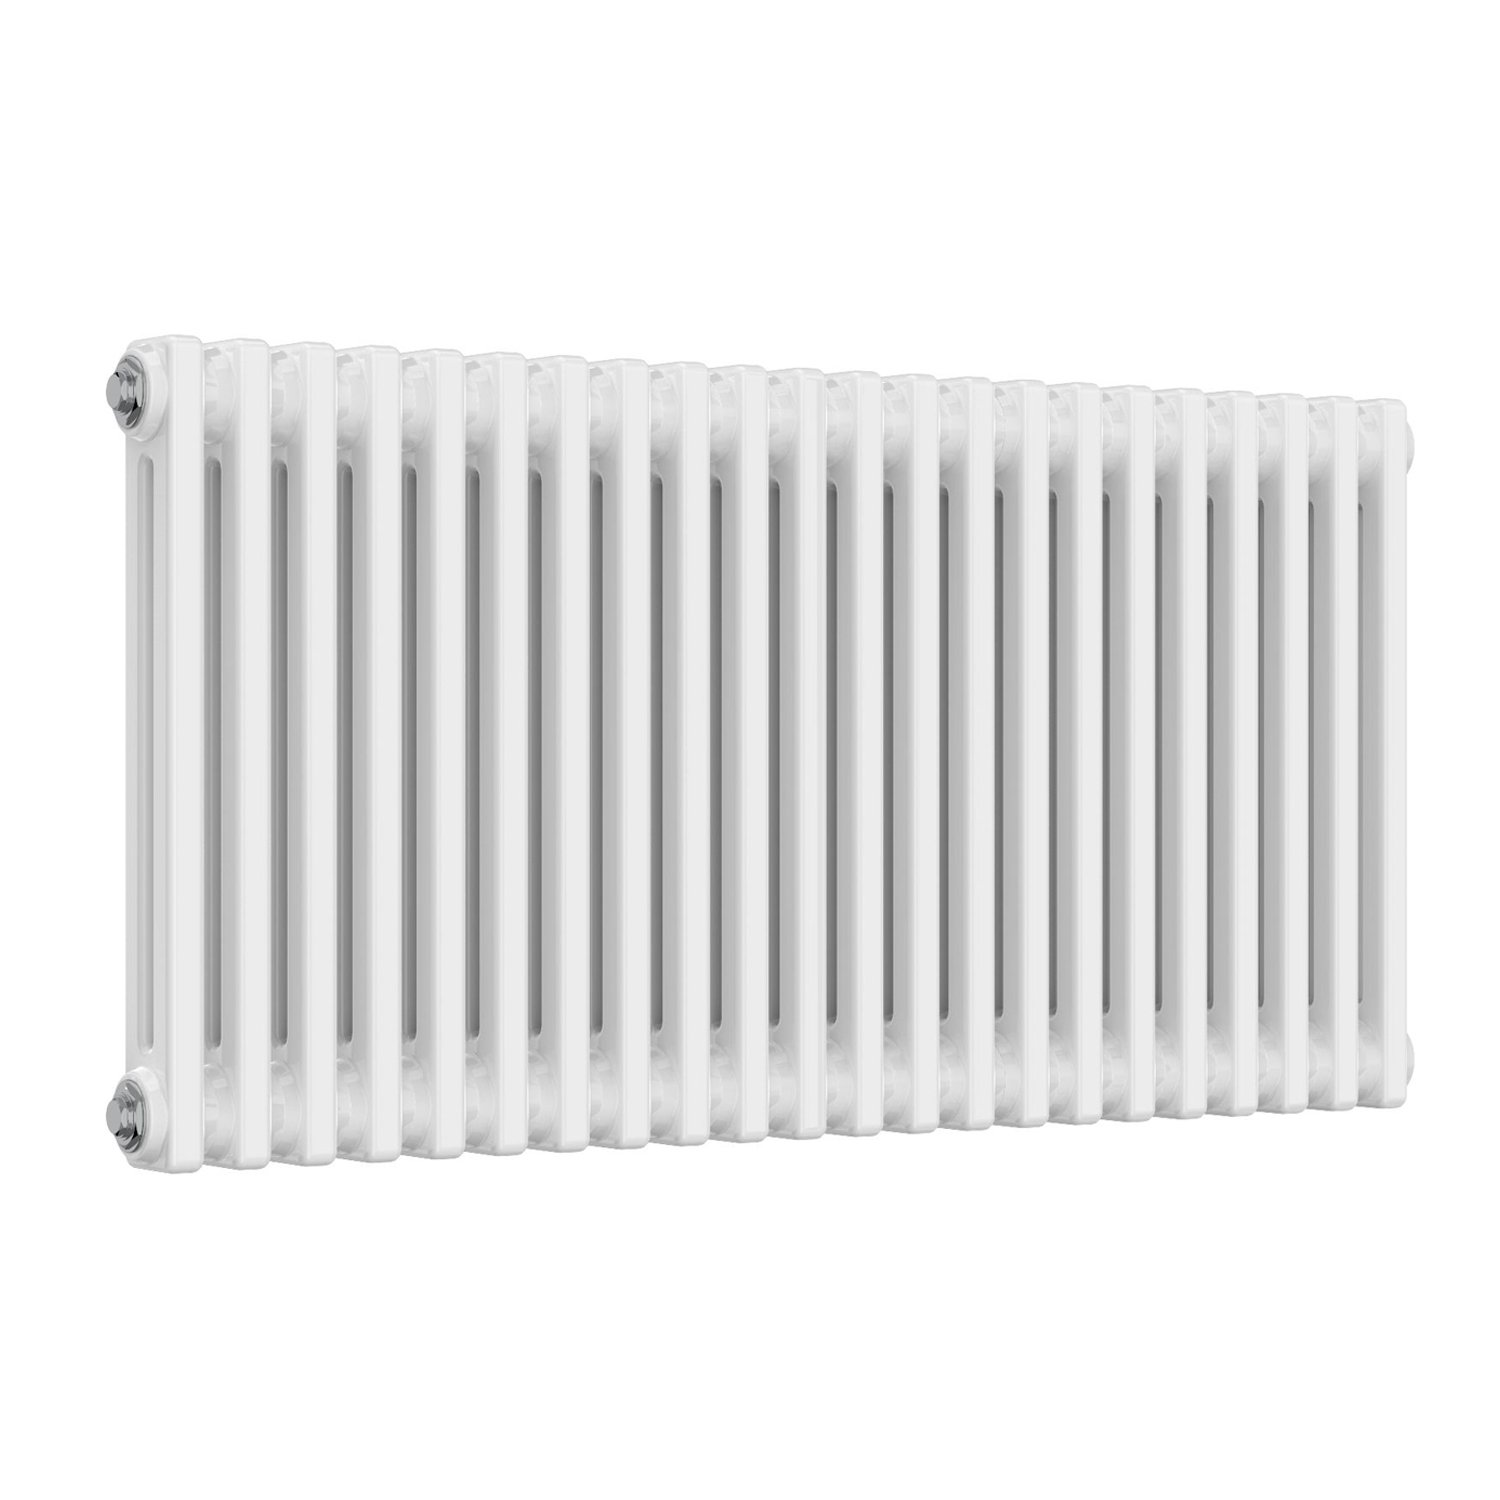 Stelrad Radical Radiator 500mm H x 400mm W Single Convector 15mm Angled TRV